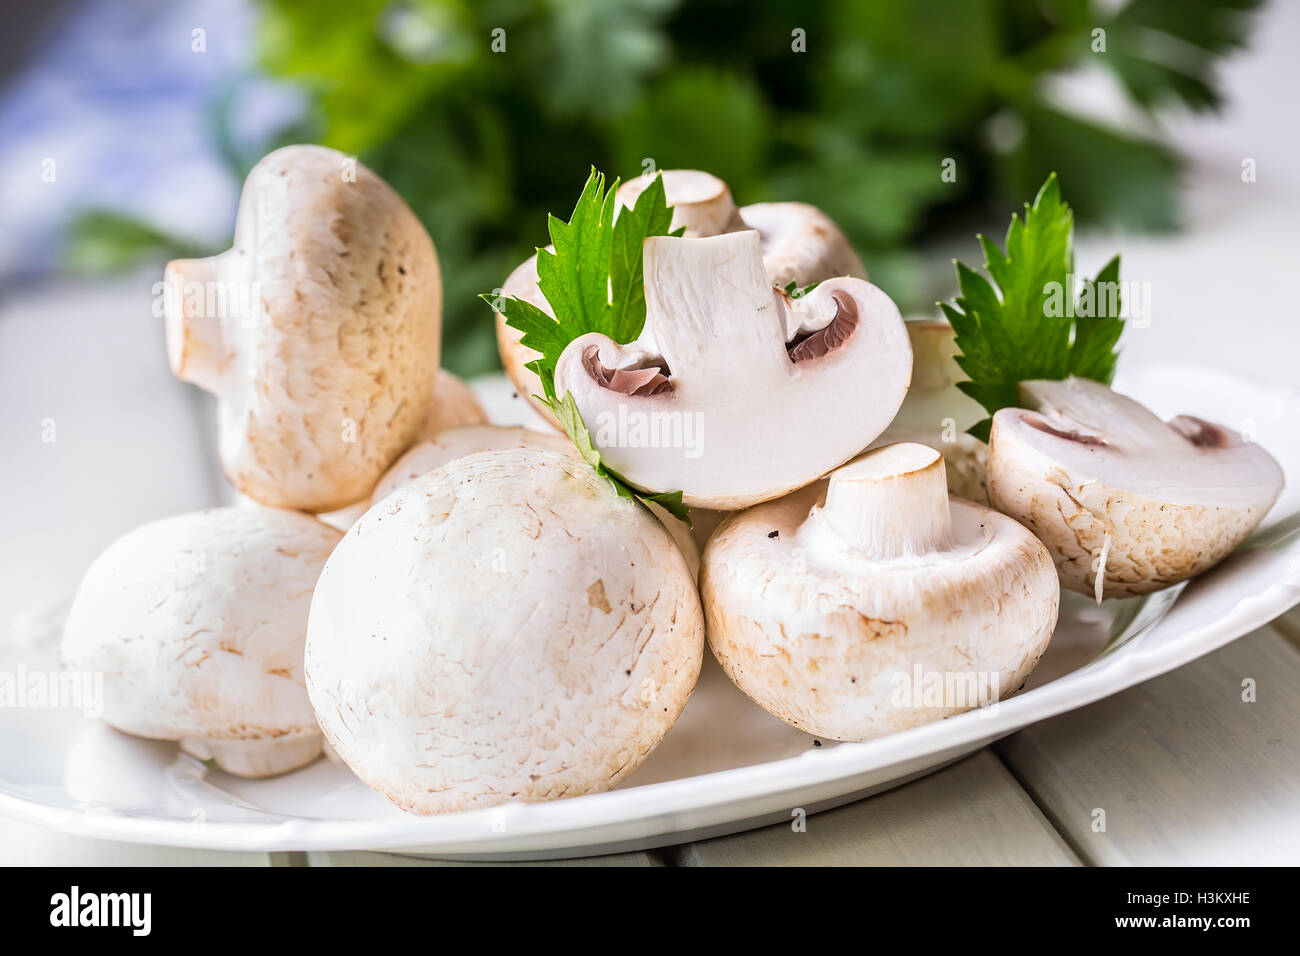 Mushroom. Champions mushrooms in different positions with herb decoration. - Stock Image